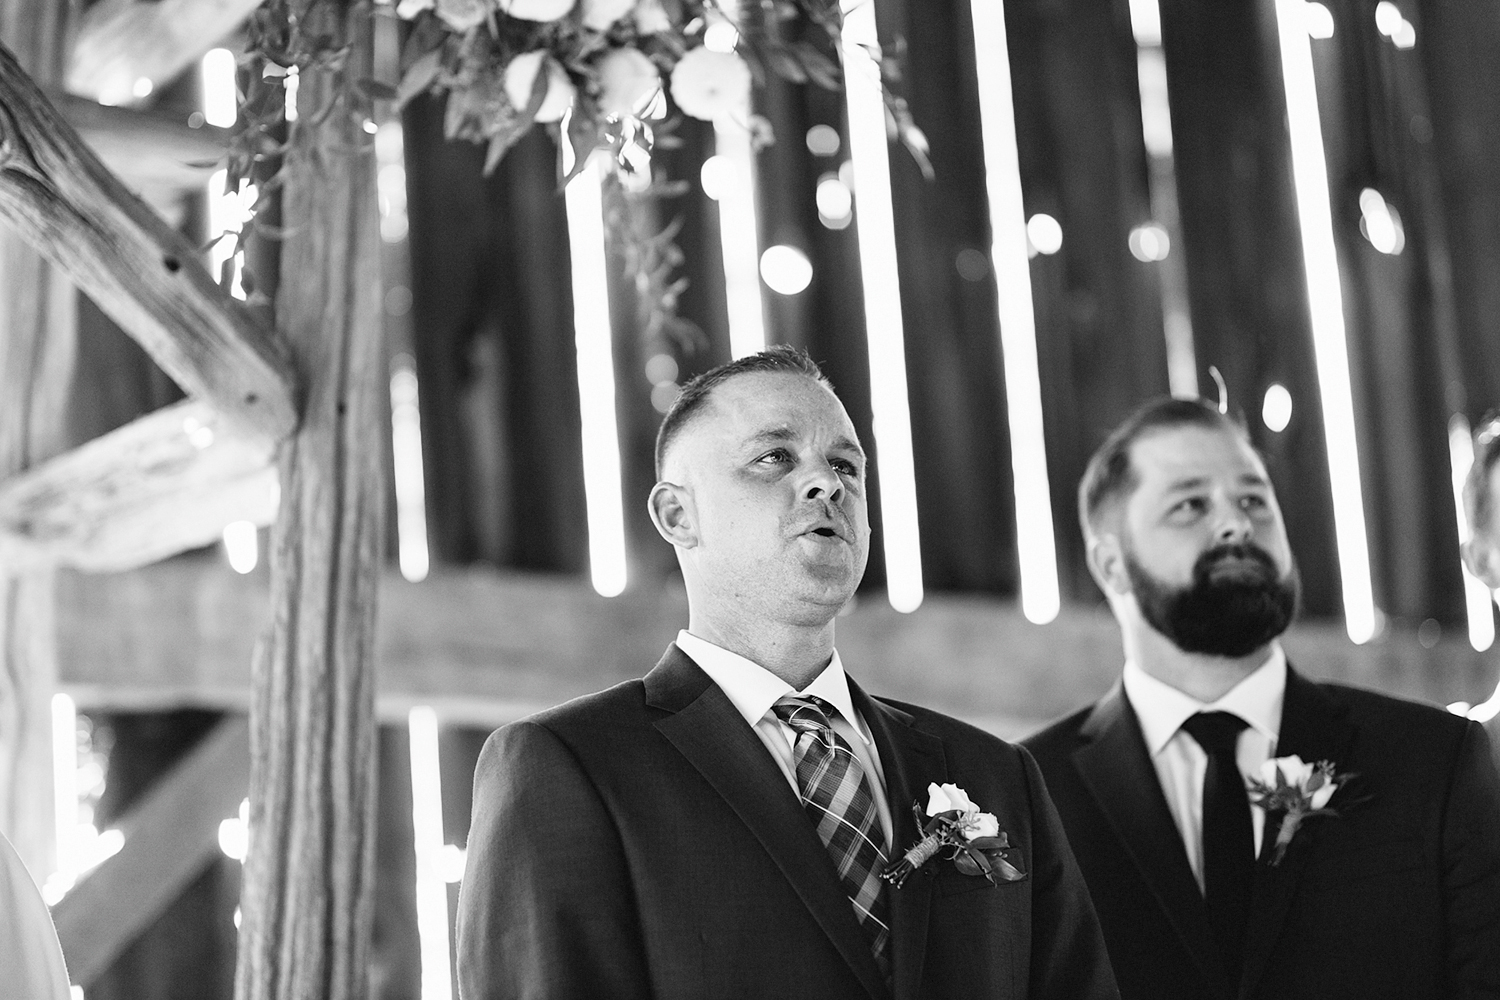 Photojournalistic-Wedding-Photographers-in-Toronto-Candid-Natural-Dowswell-Barn-Wedding-Rustic-GTA-Muskoka-Farm-ceremony-groom-waiting-for-bride-emotional-crying-love-actually.jpg